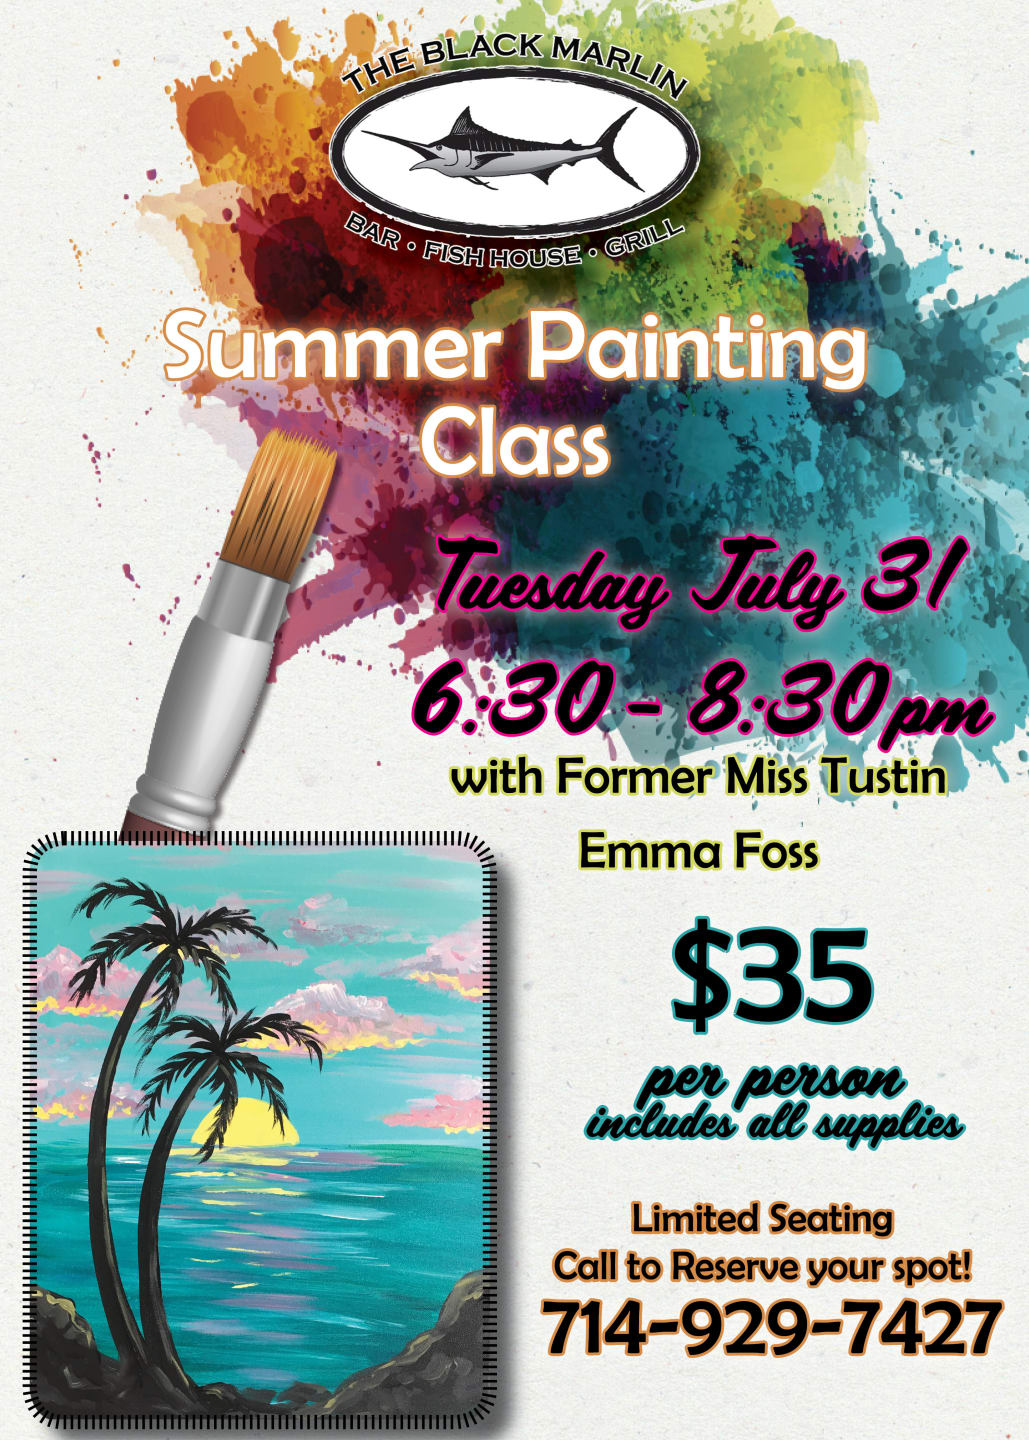 JULY 31 - Summer Painting Class